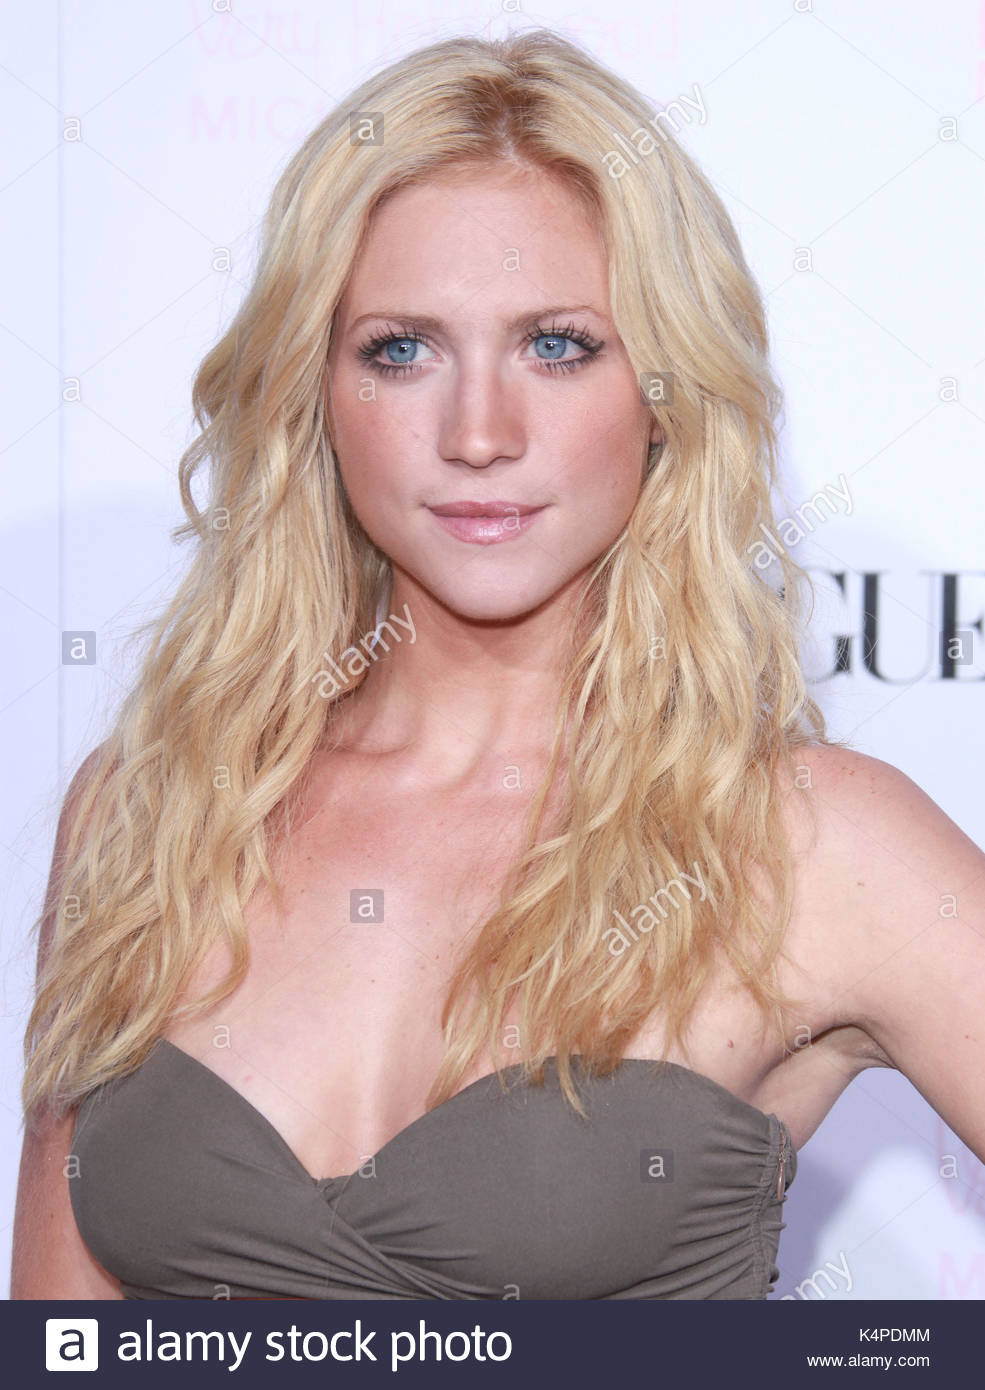 Young Brittany Snow nudes (67 photo), Topless, Bikini, Instagram, see through 2019